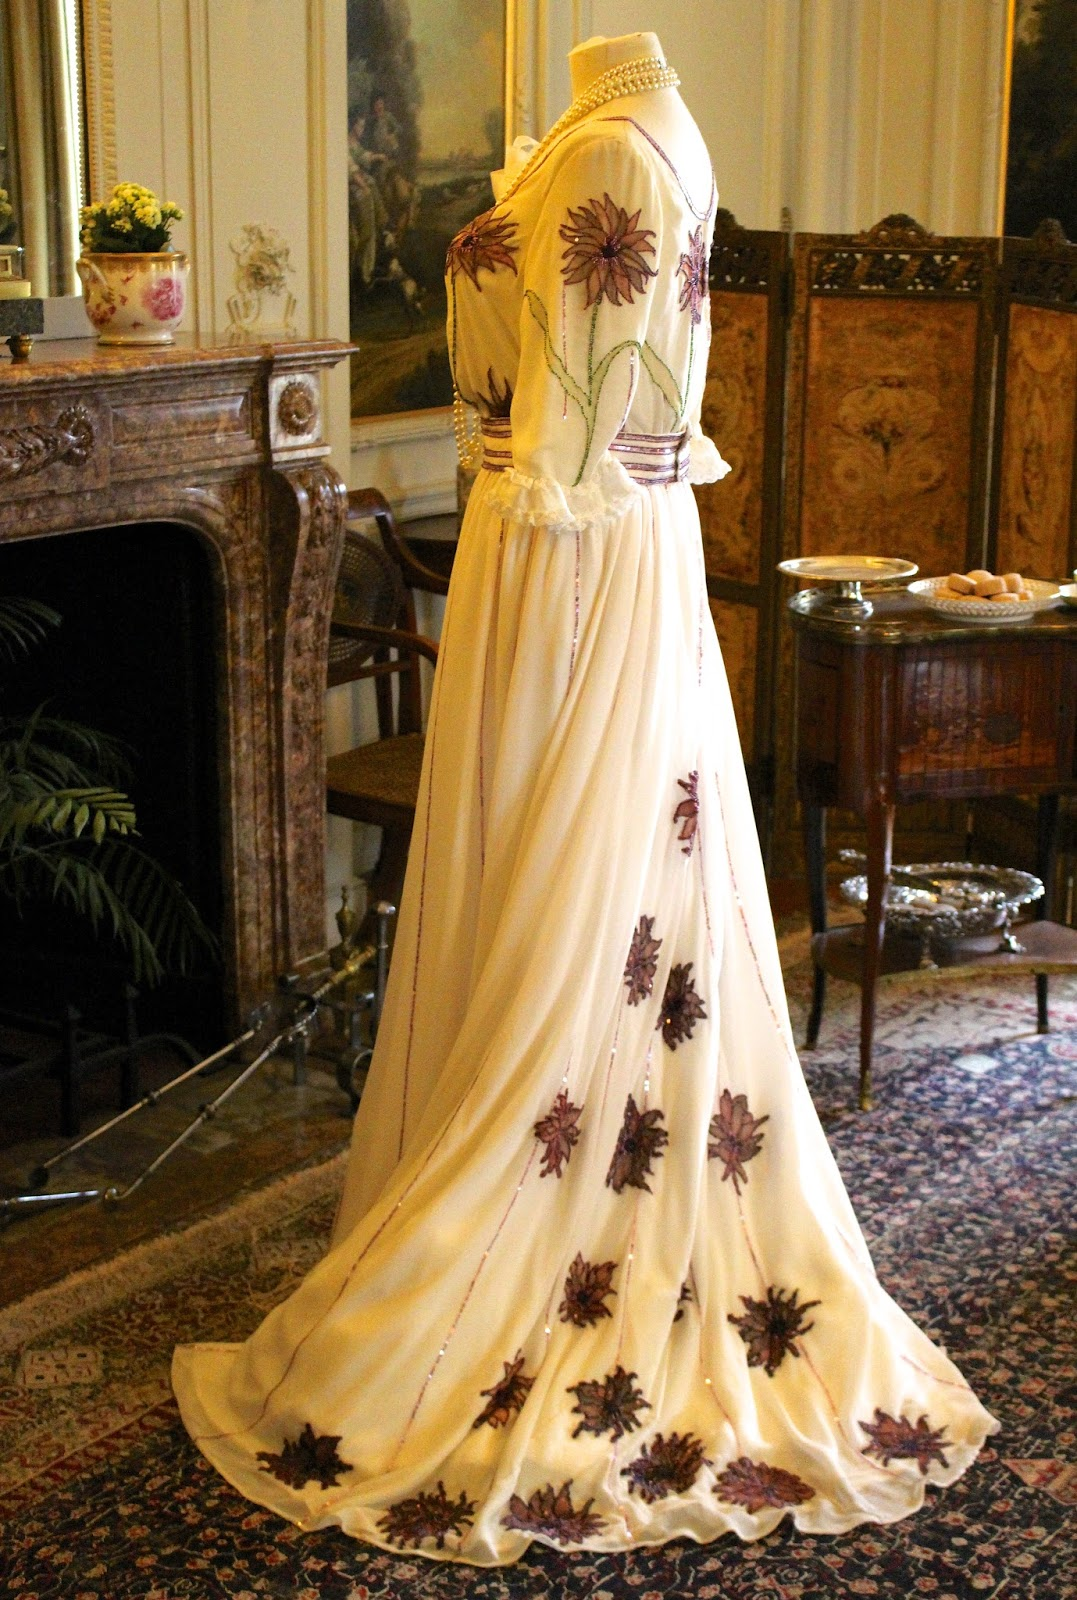 Ladies dress costume at polesden lacey